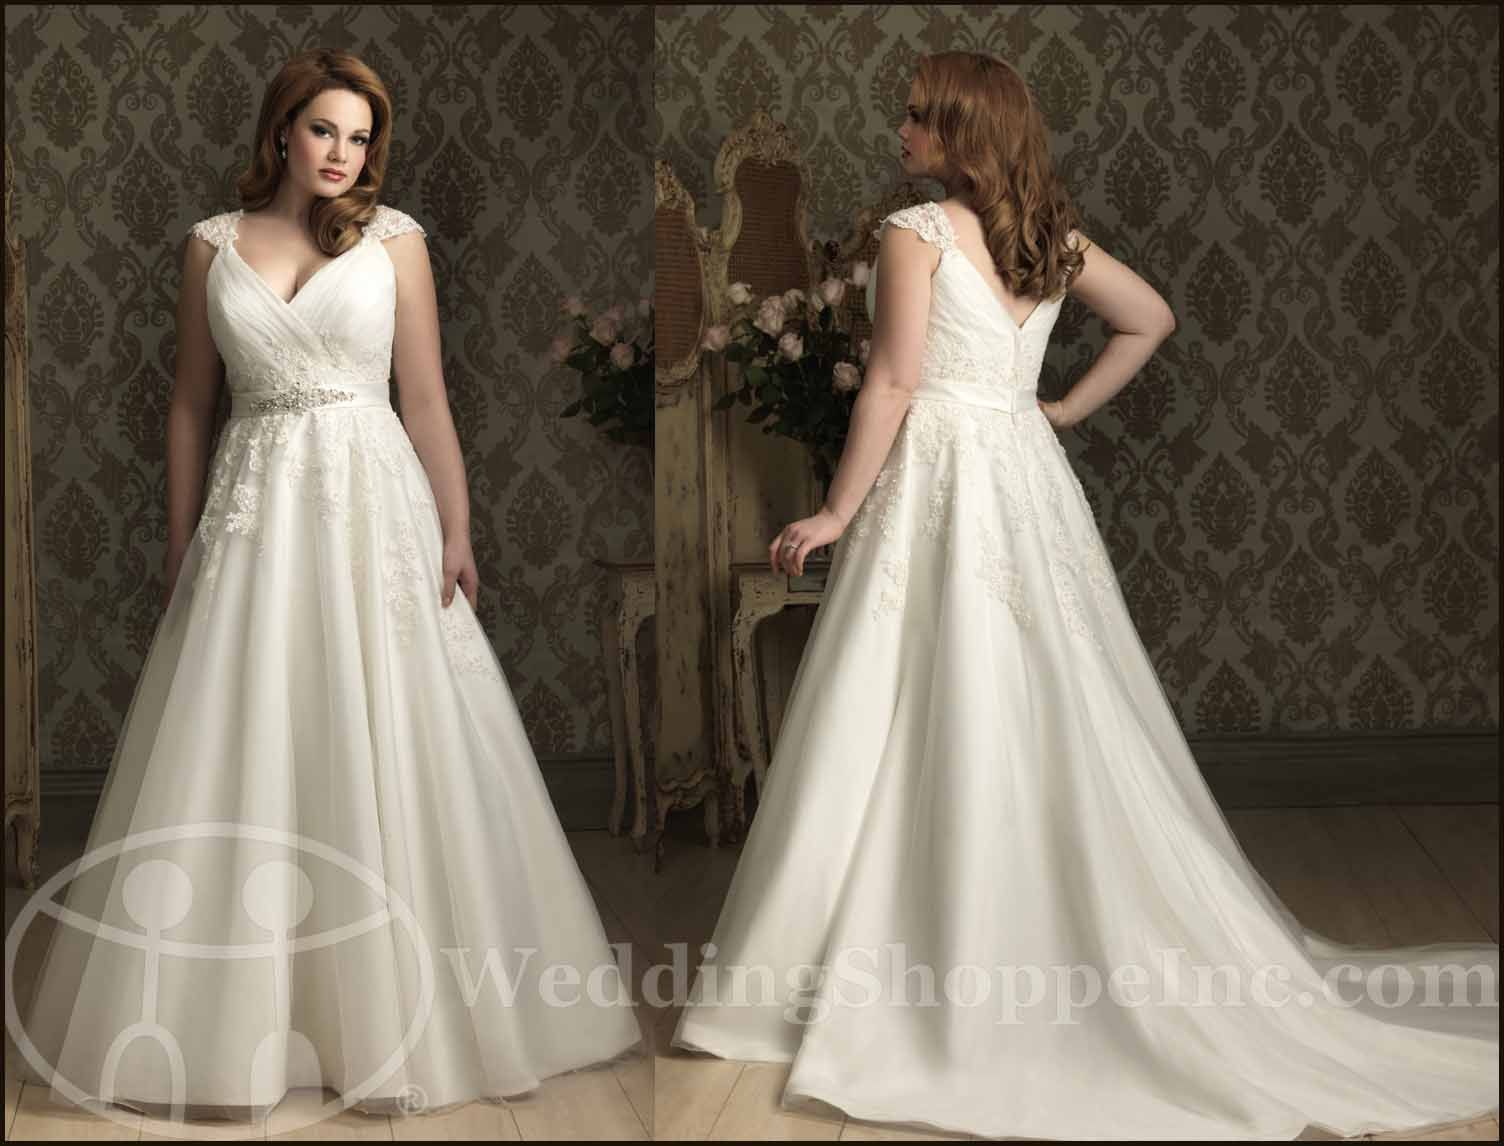 Mermaid plus size wedding dresses   Tips for Shopping for Plus Size Wedding Dresses  Pinterest